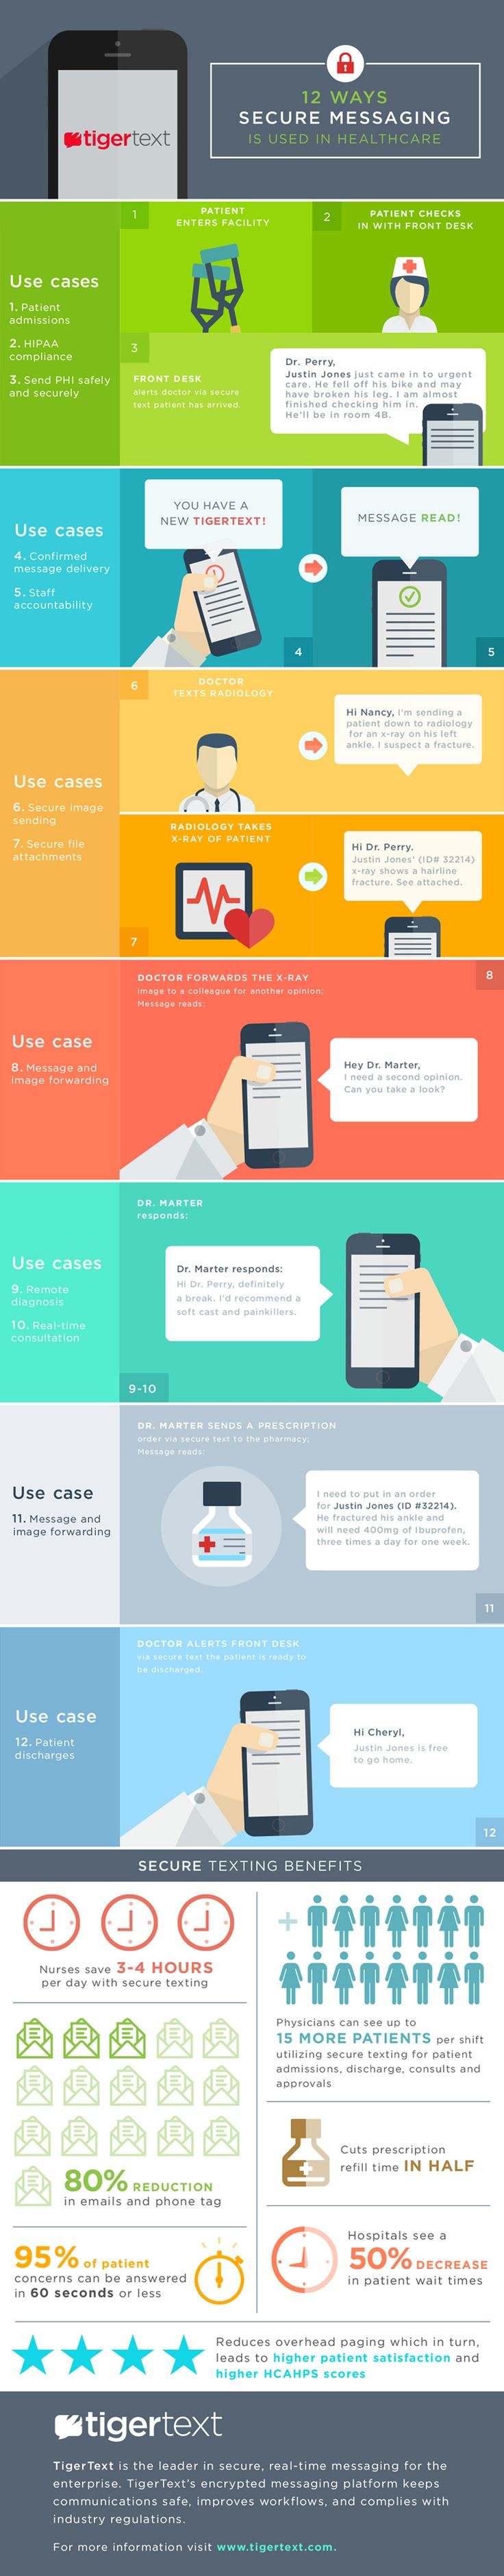 12 ways to secure messaging in health care #infographics #mhealth #healthcare #hcmktg